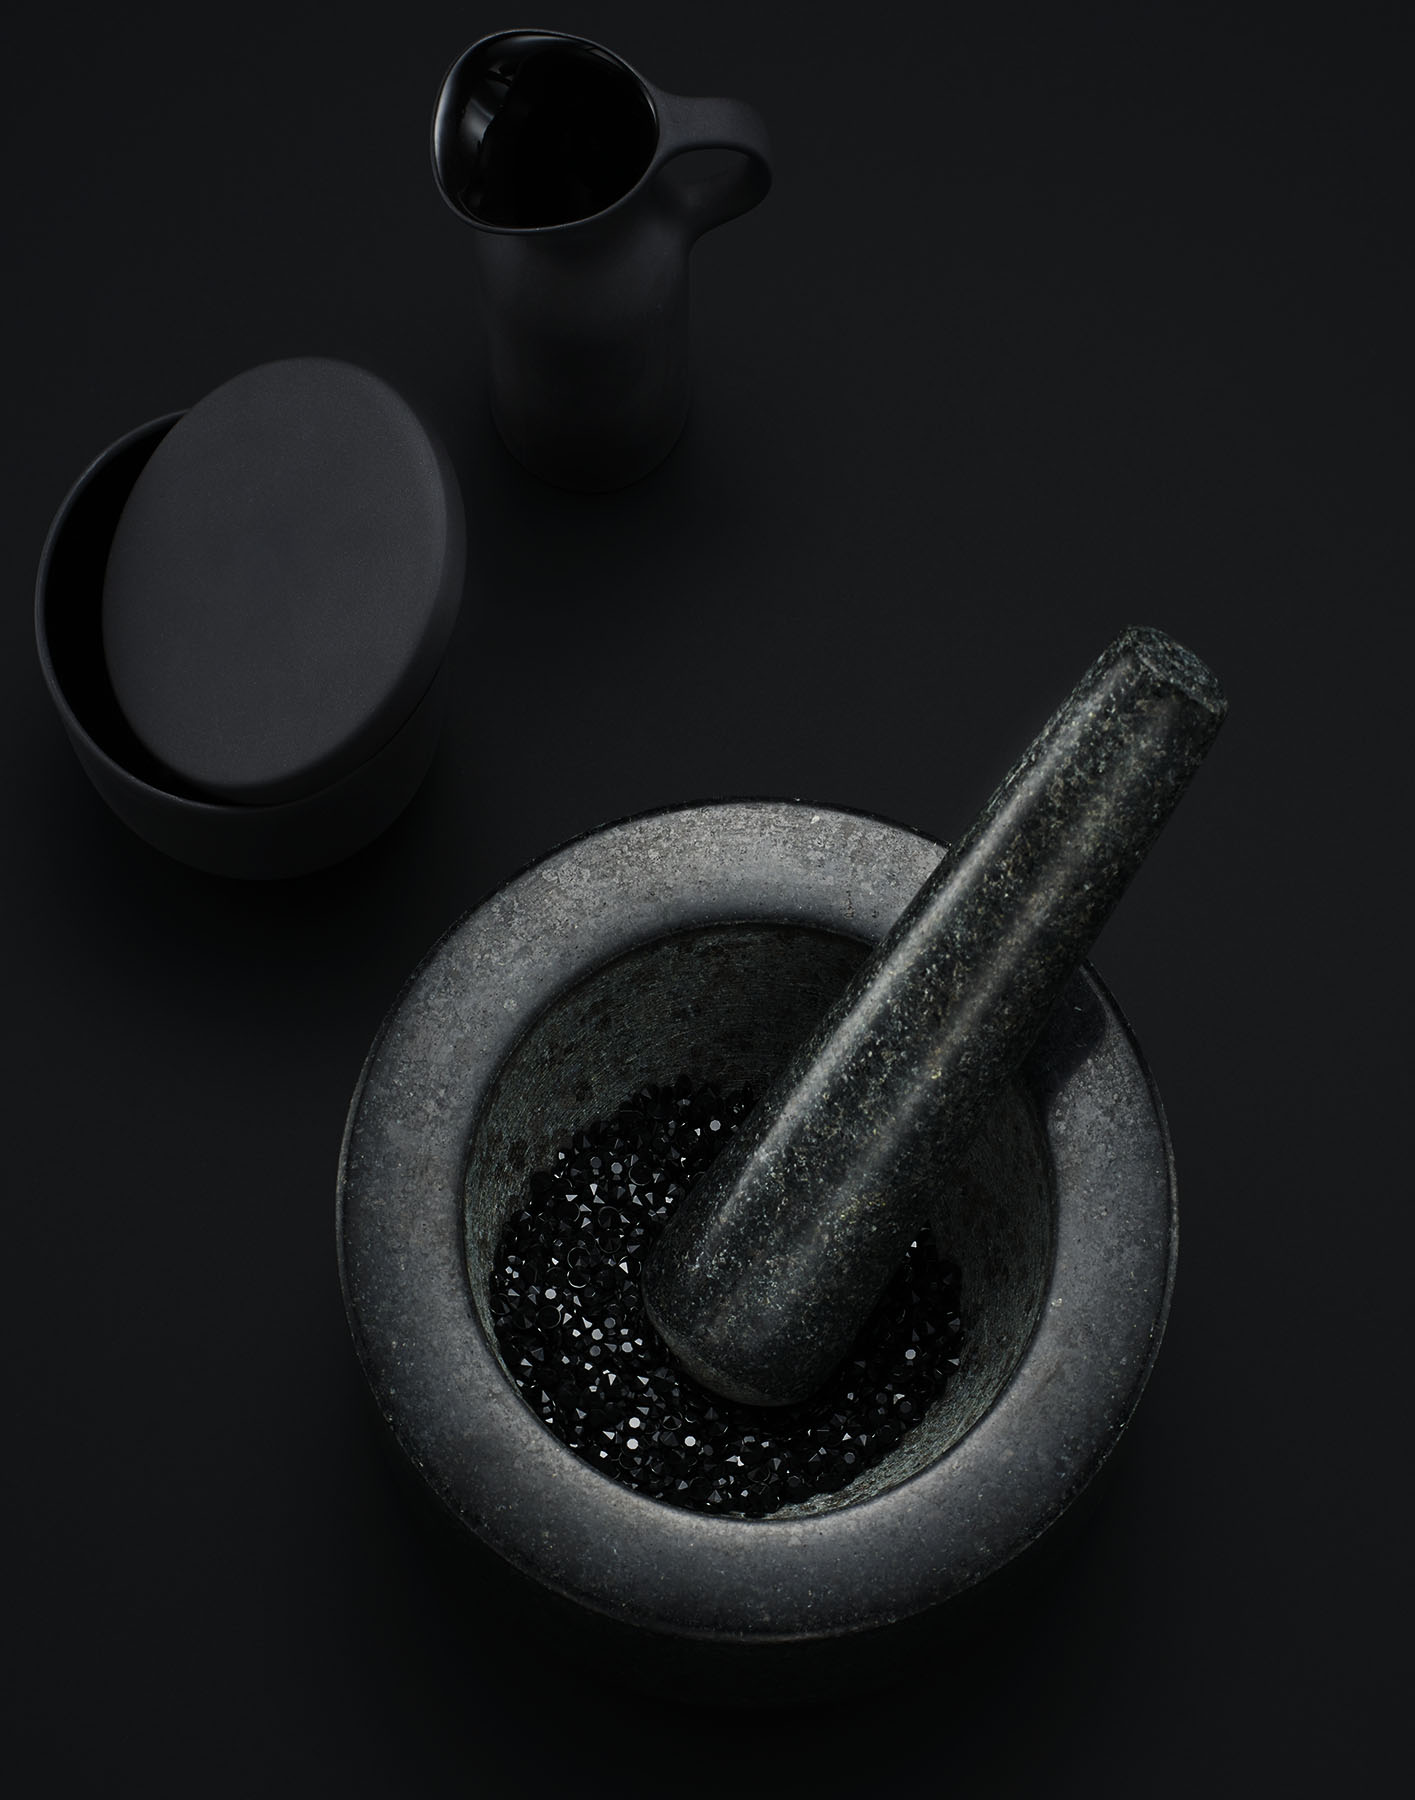 150921-BA-Mortar-Pestle-Black-1018